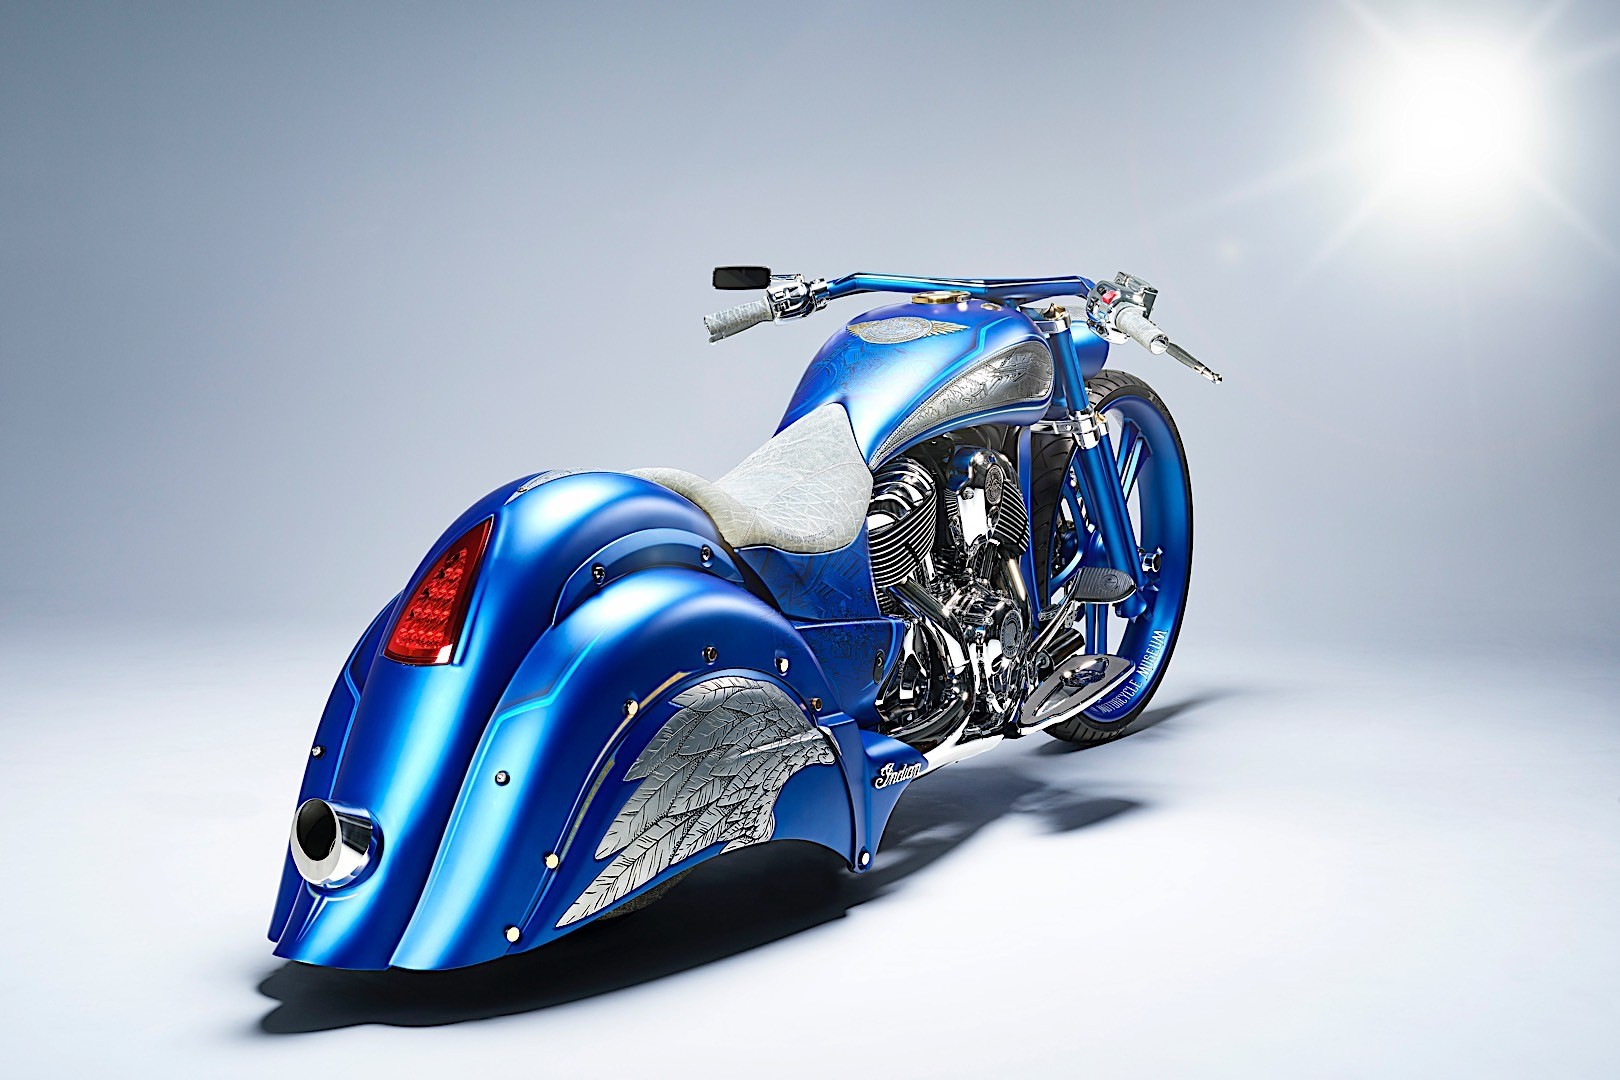 Custom Indian Motorcycle For Sale >> Paul Jr. Designs Bikes First Photos - autoevolution